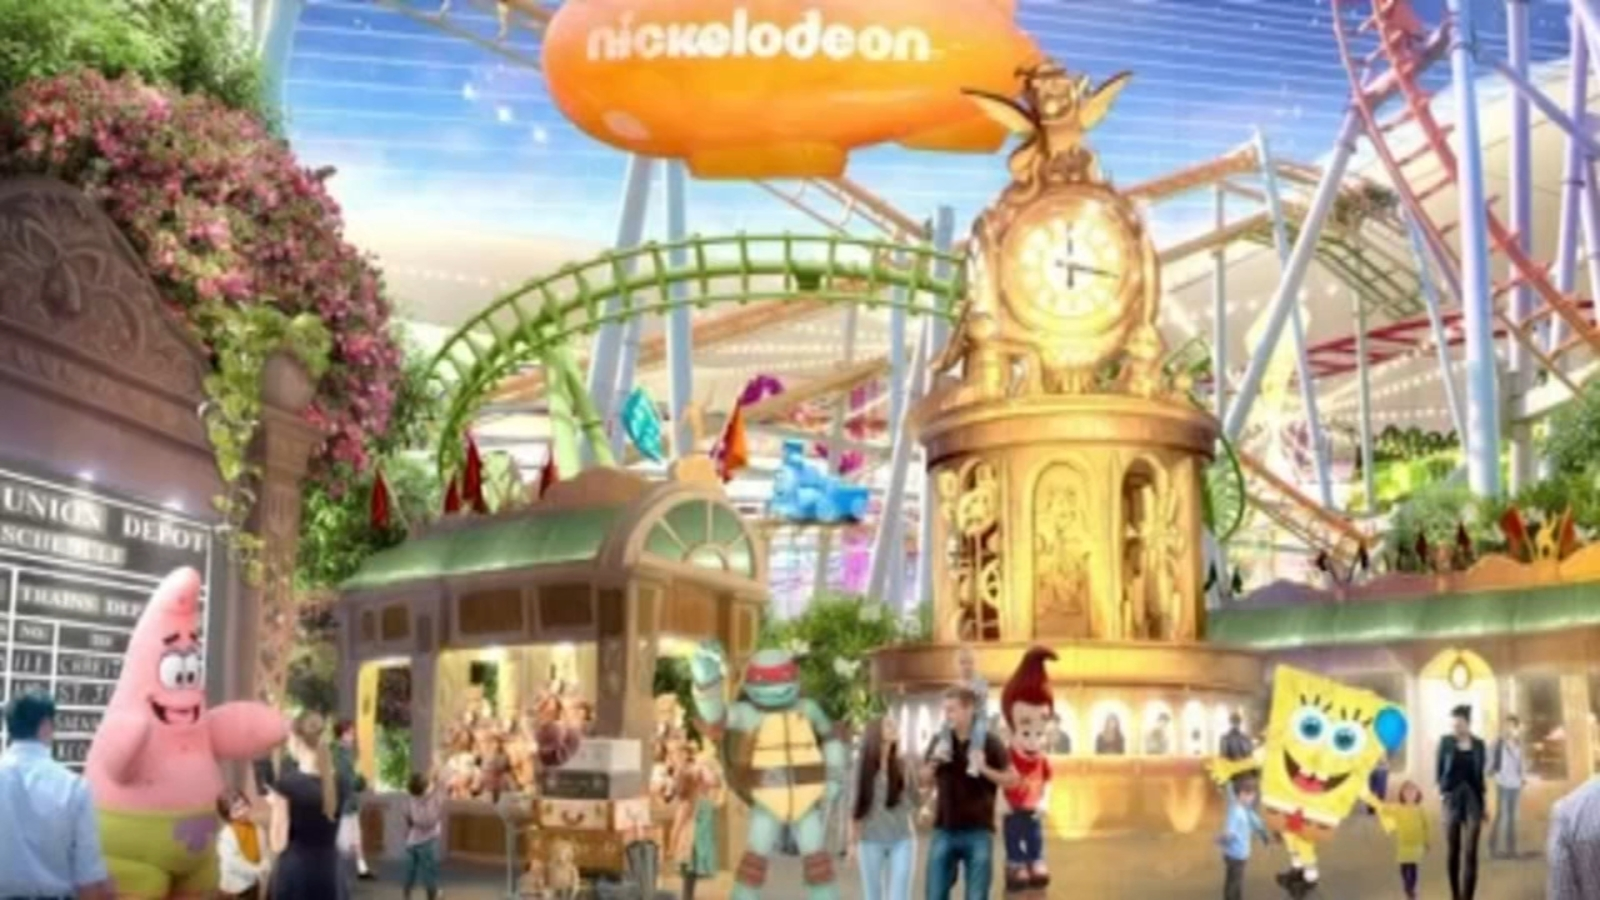 Largest indoor theme park in North America opens this week in New Jersey